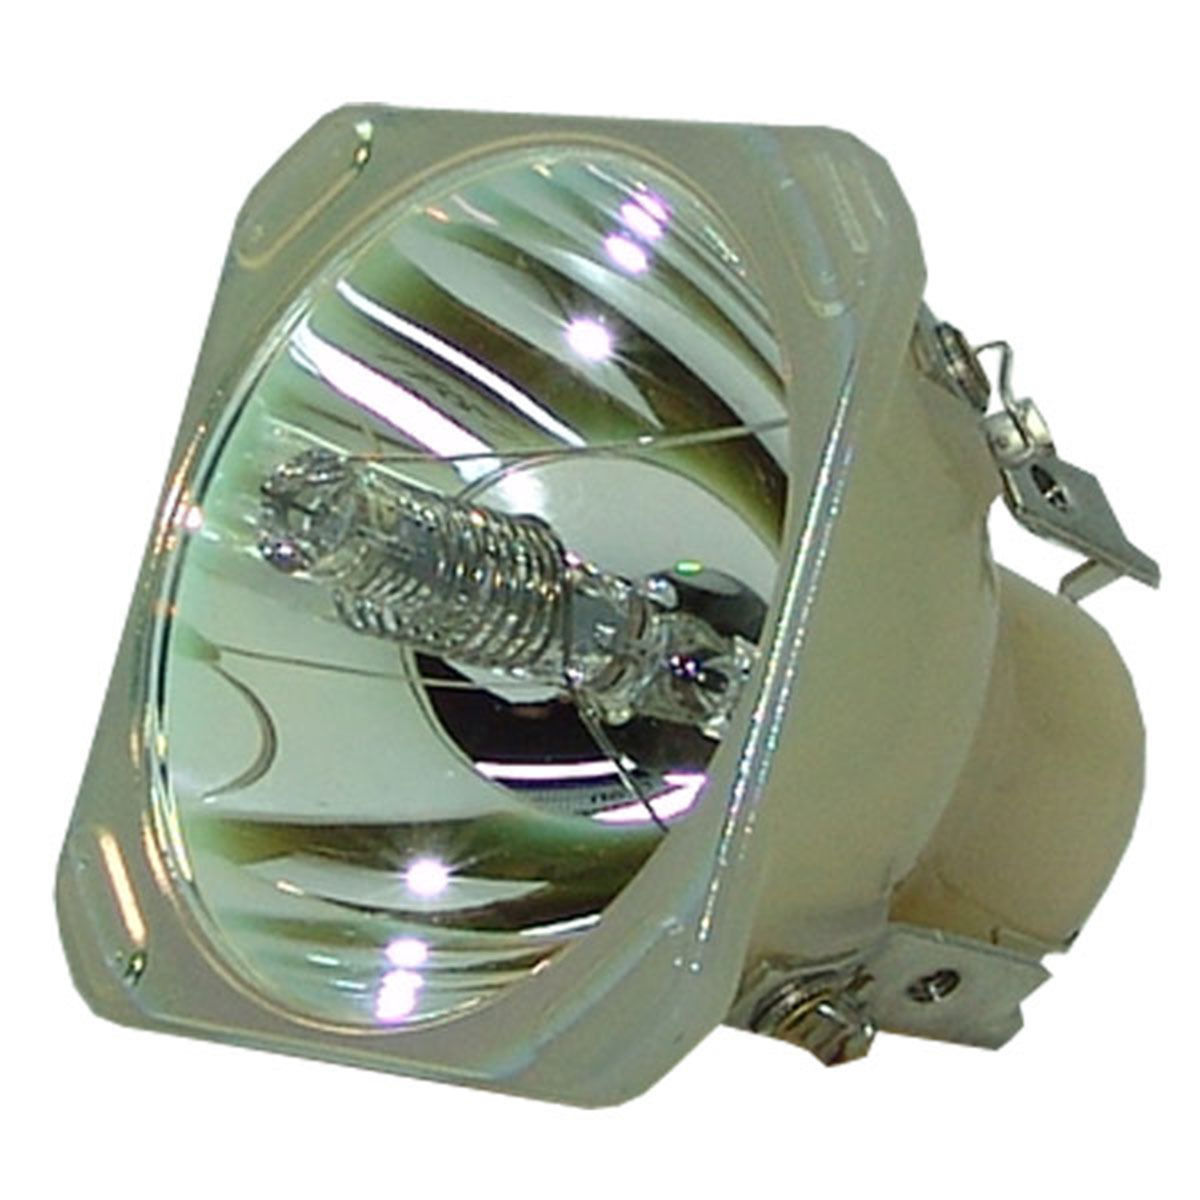 все цены на Compatible Bare Bulb BL-FU200C BLFU200C SP.86J01GC01 for Optoma DS302 DS303 / DX602 / EP706 Projector Lamp Bulb without housing онлайн